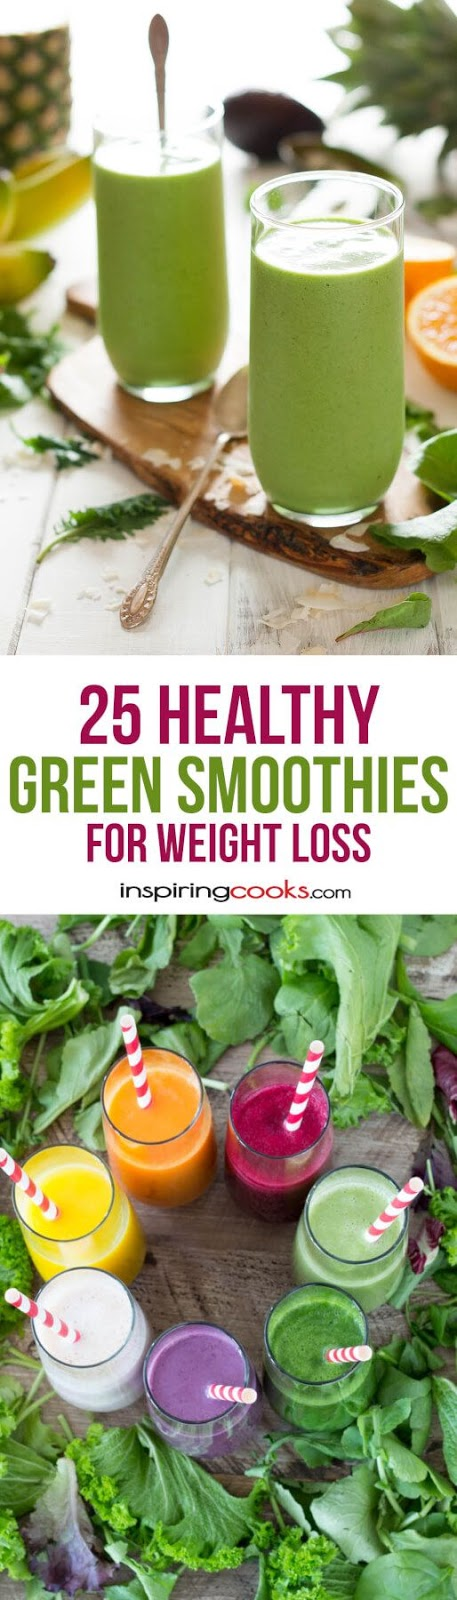 Best 25 Healthy Green Smoothie Recipes for Weight Loss